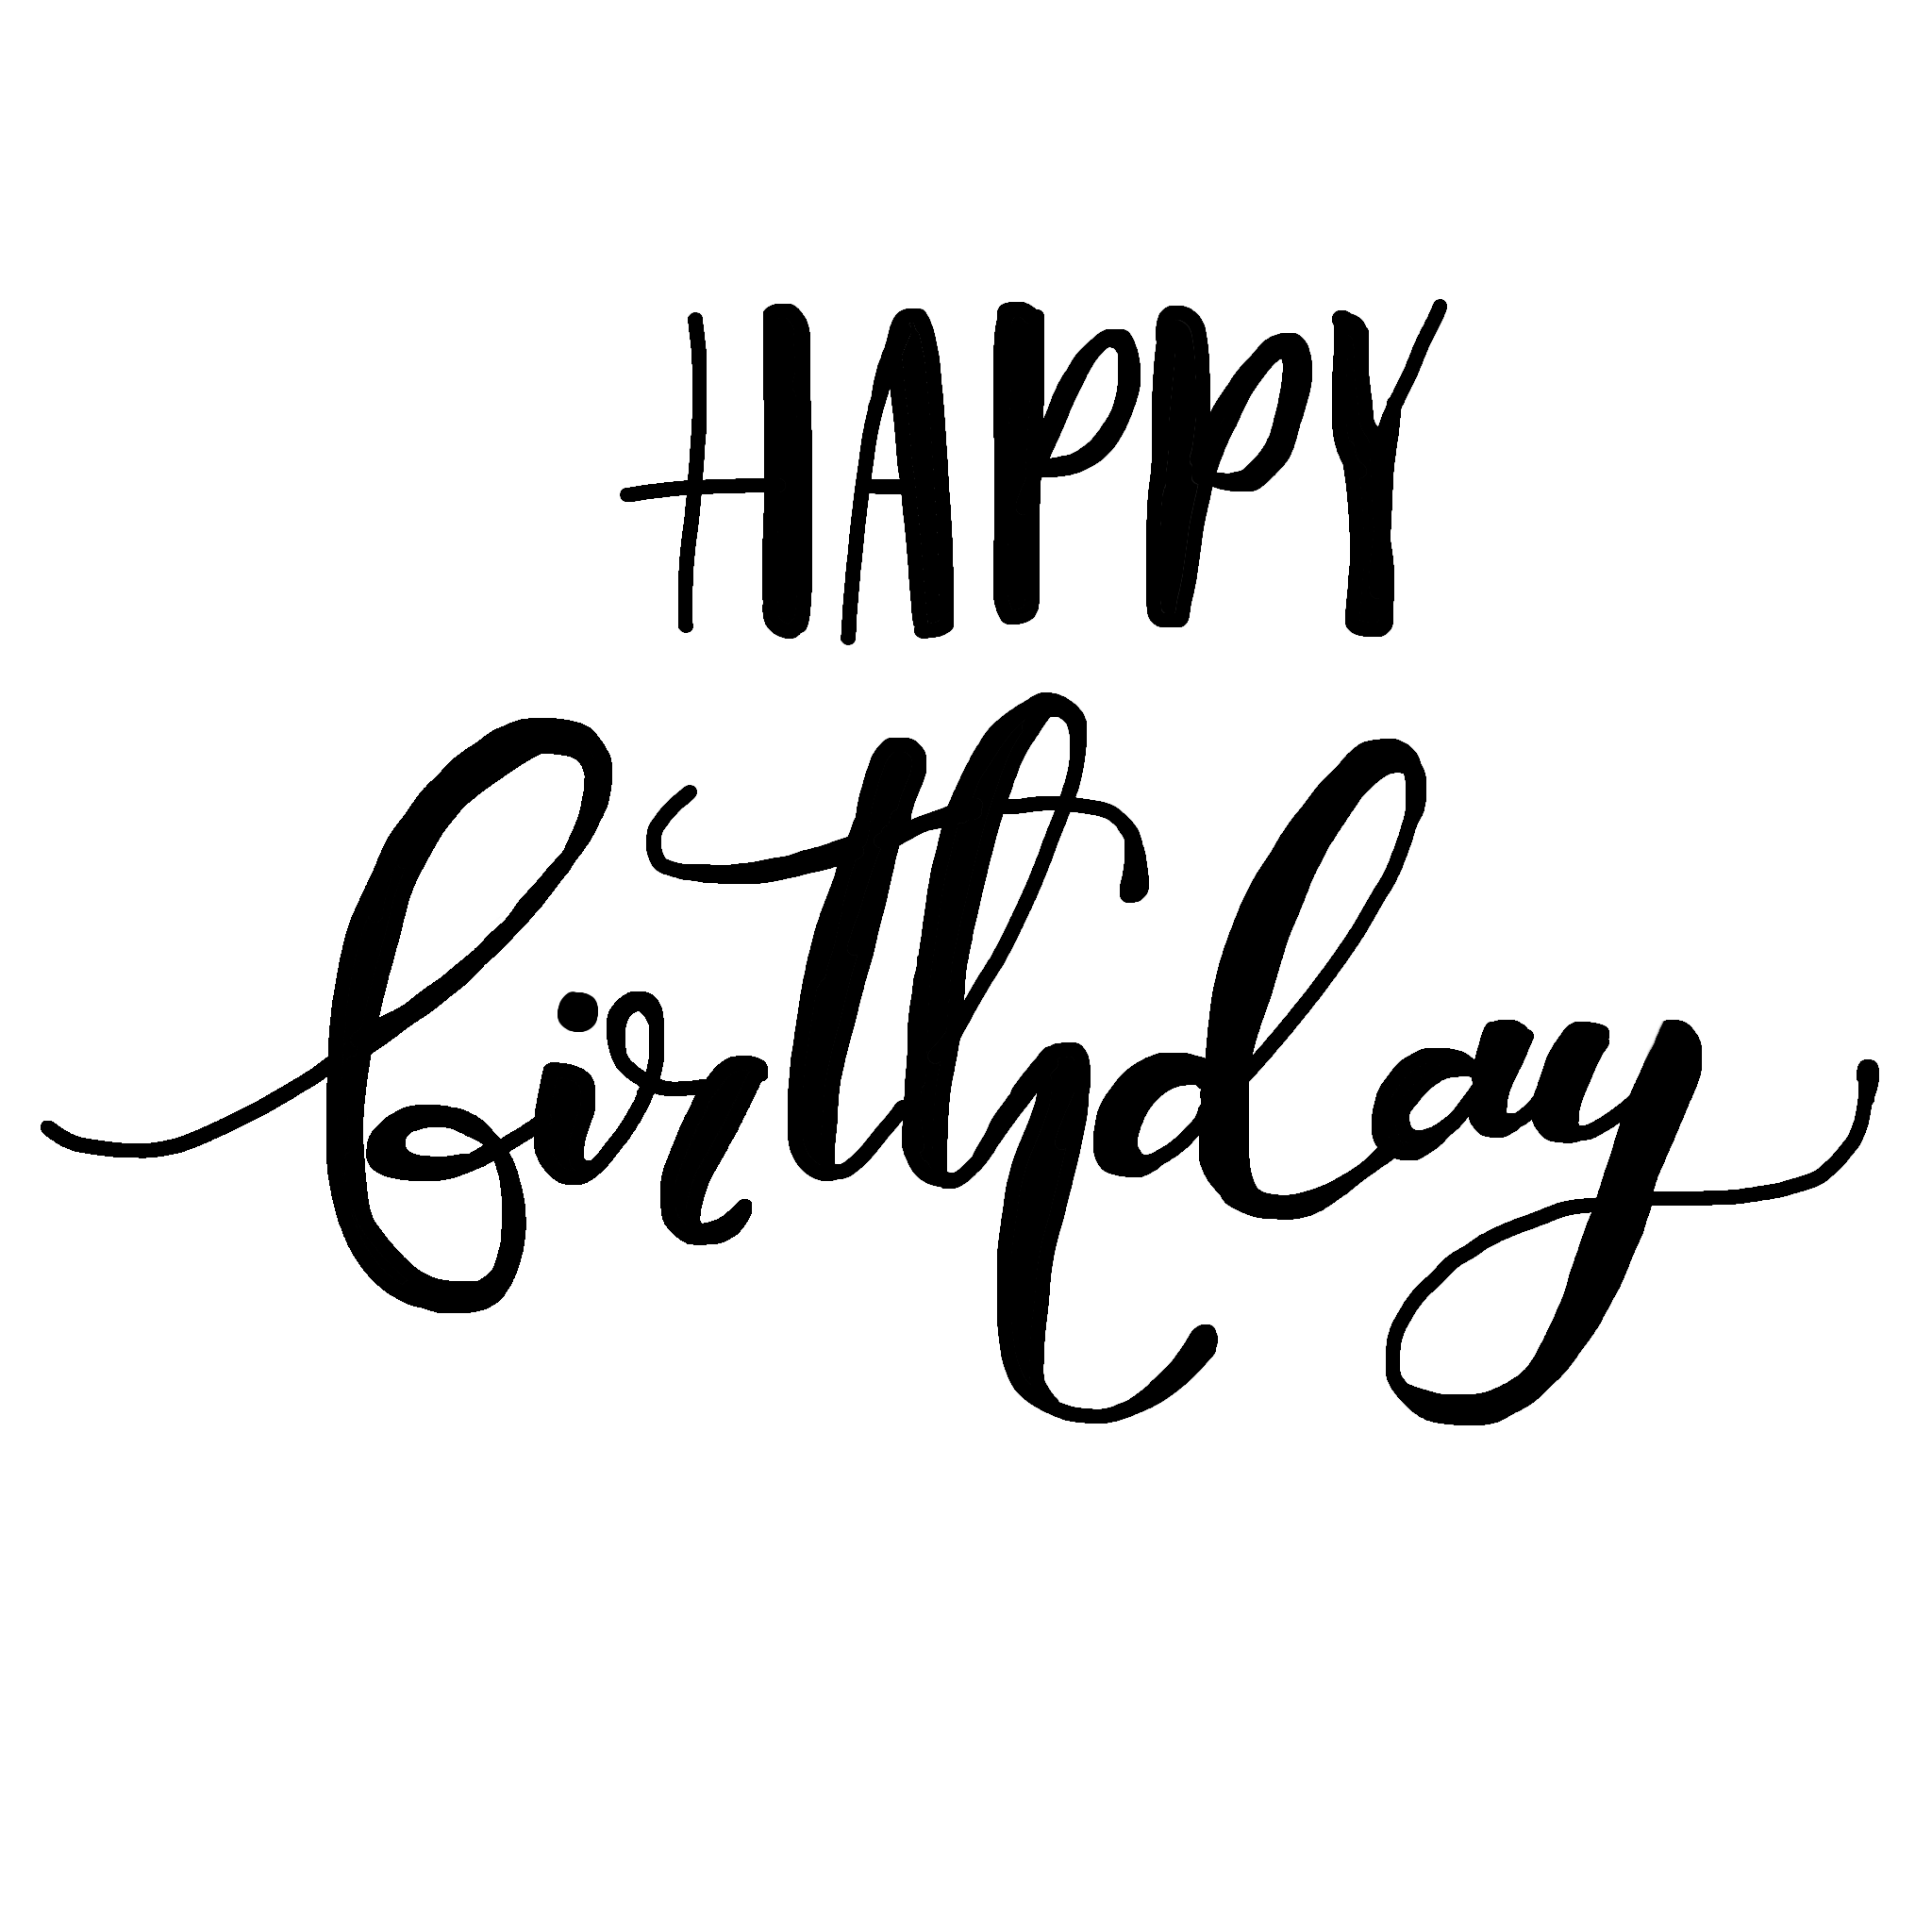 Happybirthday Birthday Happy Birthdayquote Quotesandsay